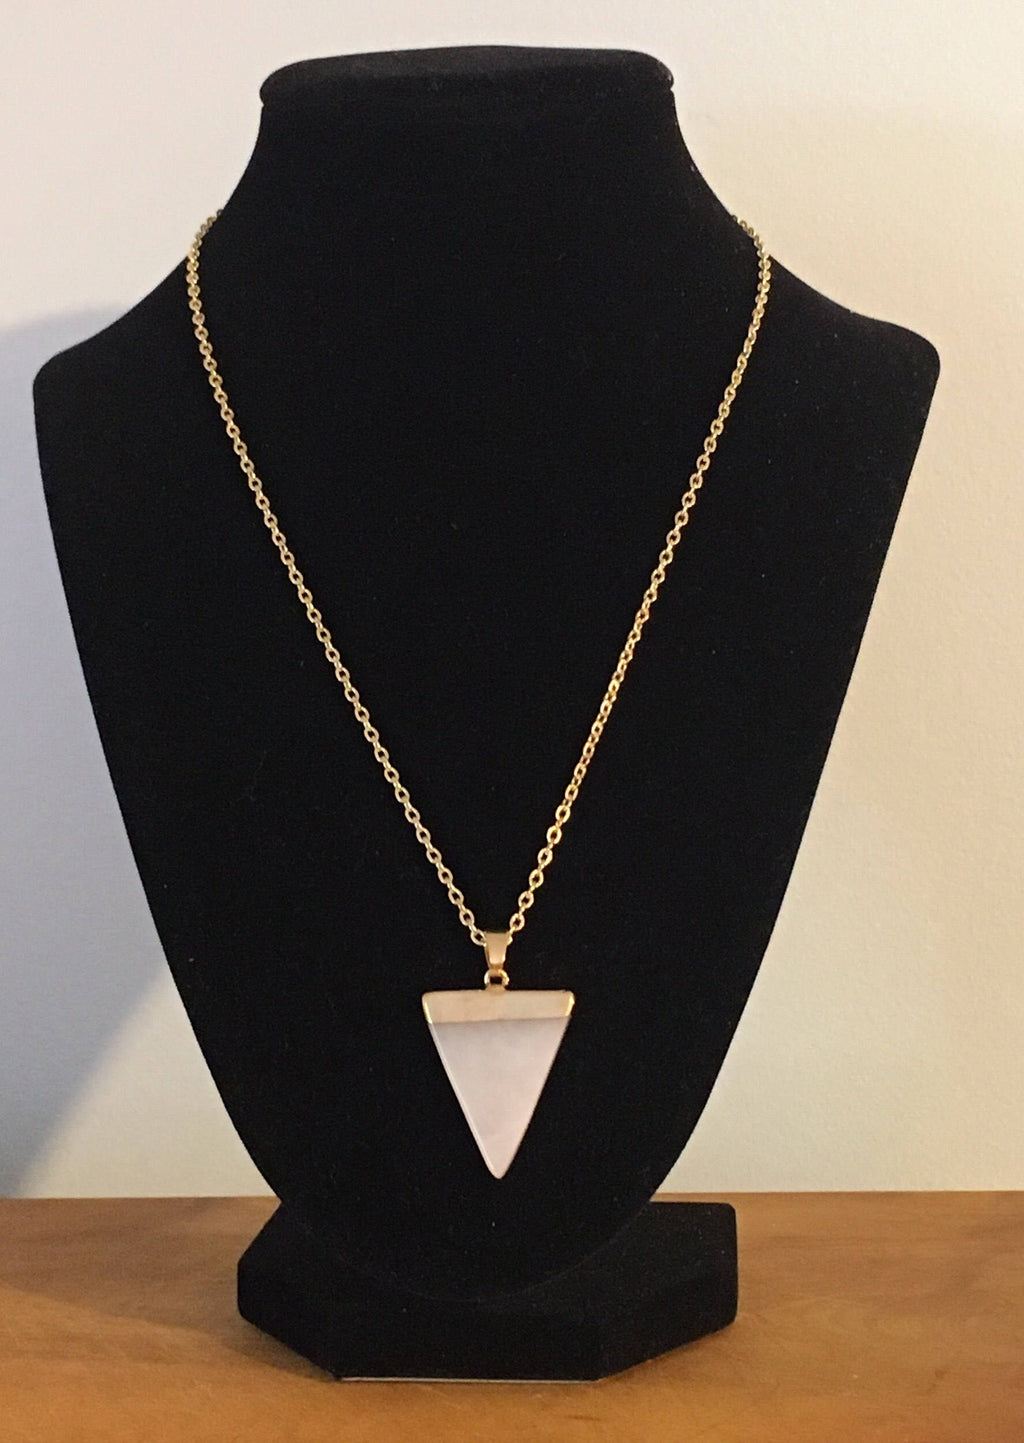 Genuine Rose Quartz Necklace, Womens Rose Quartz Necklace, Rose Quartz and Gold Necklace, Gold Necklace, Rose Quartz, Love